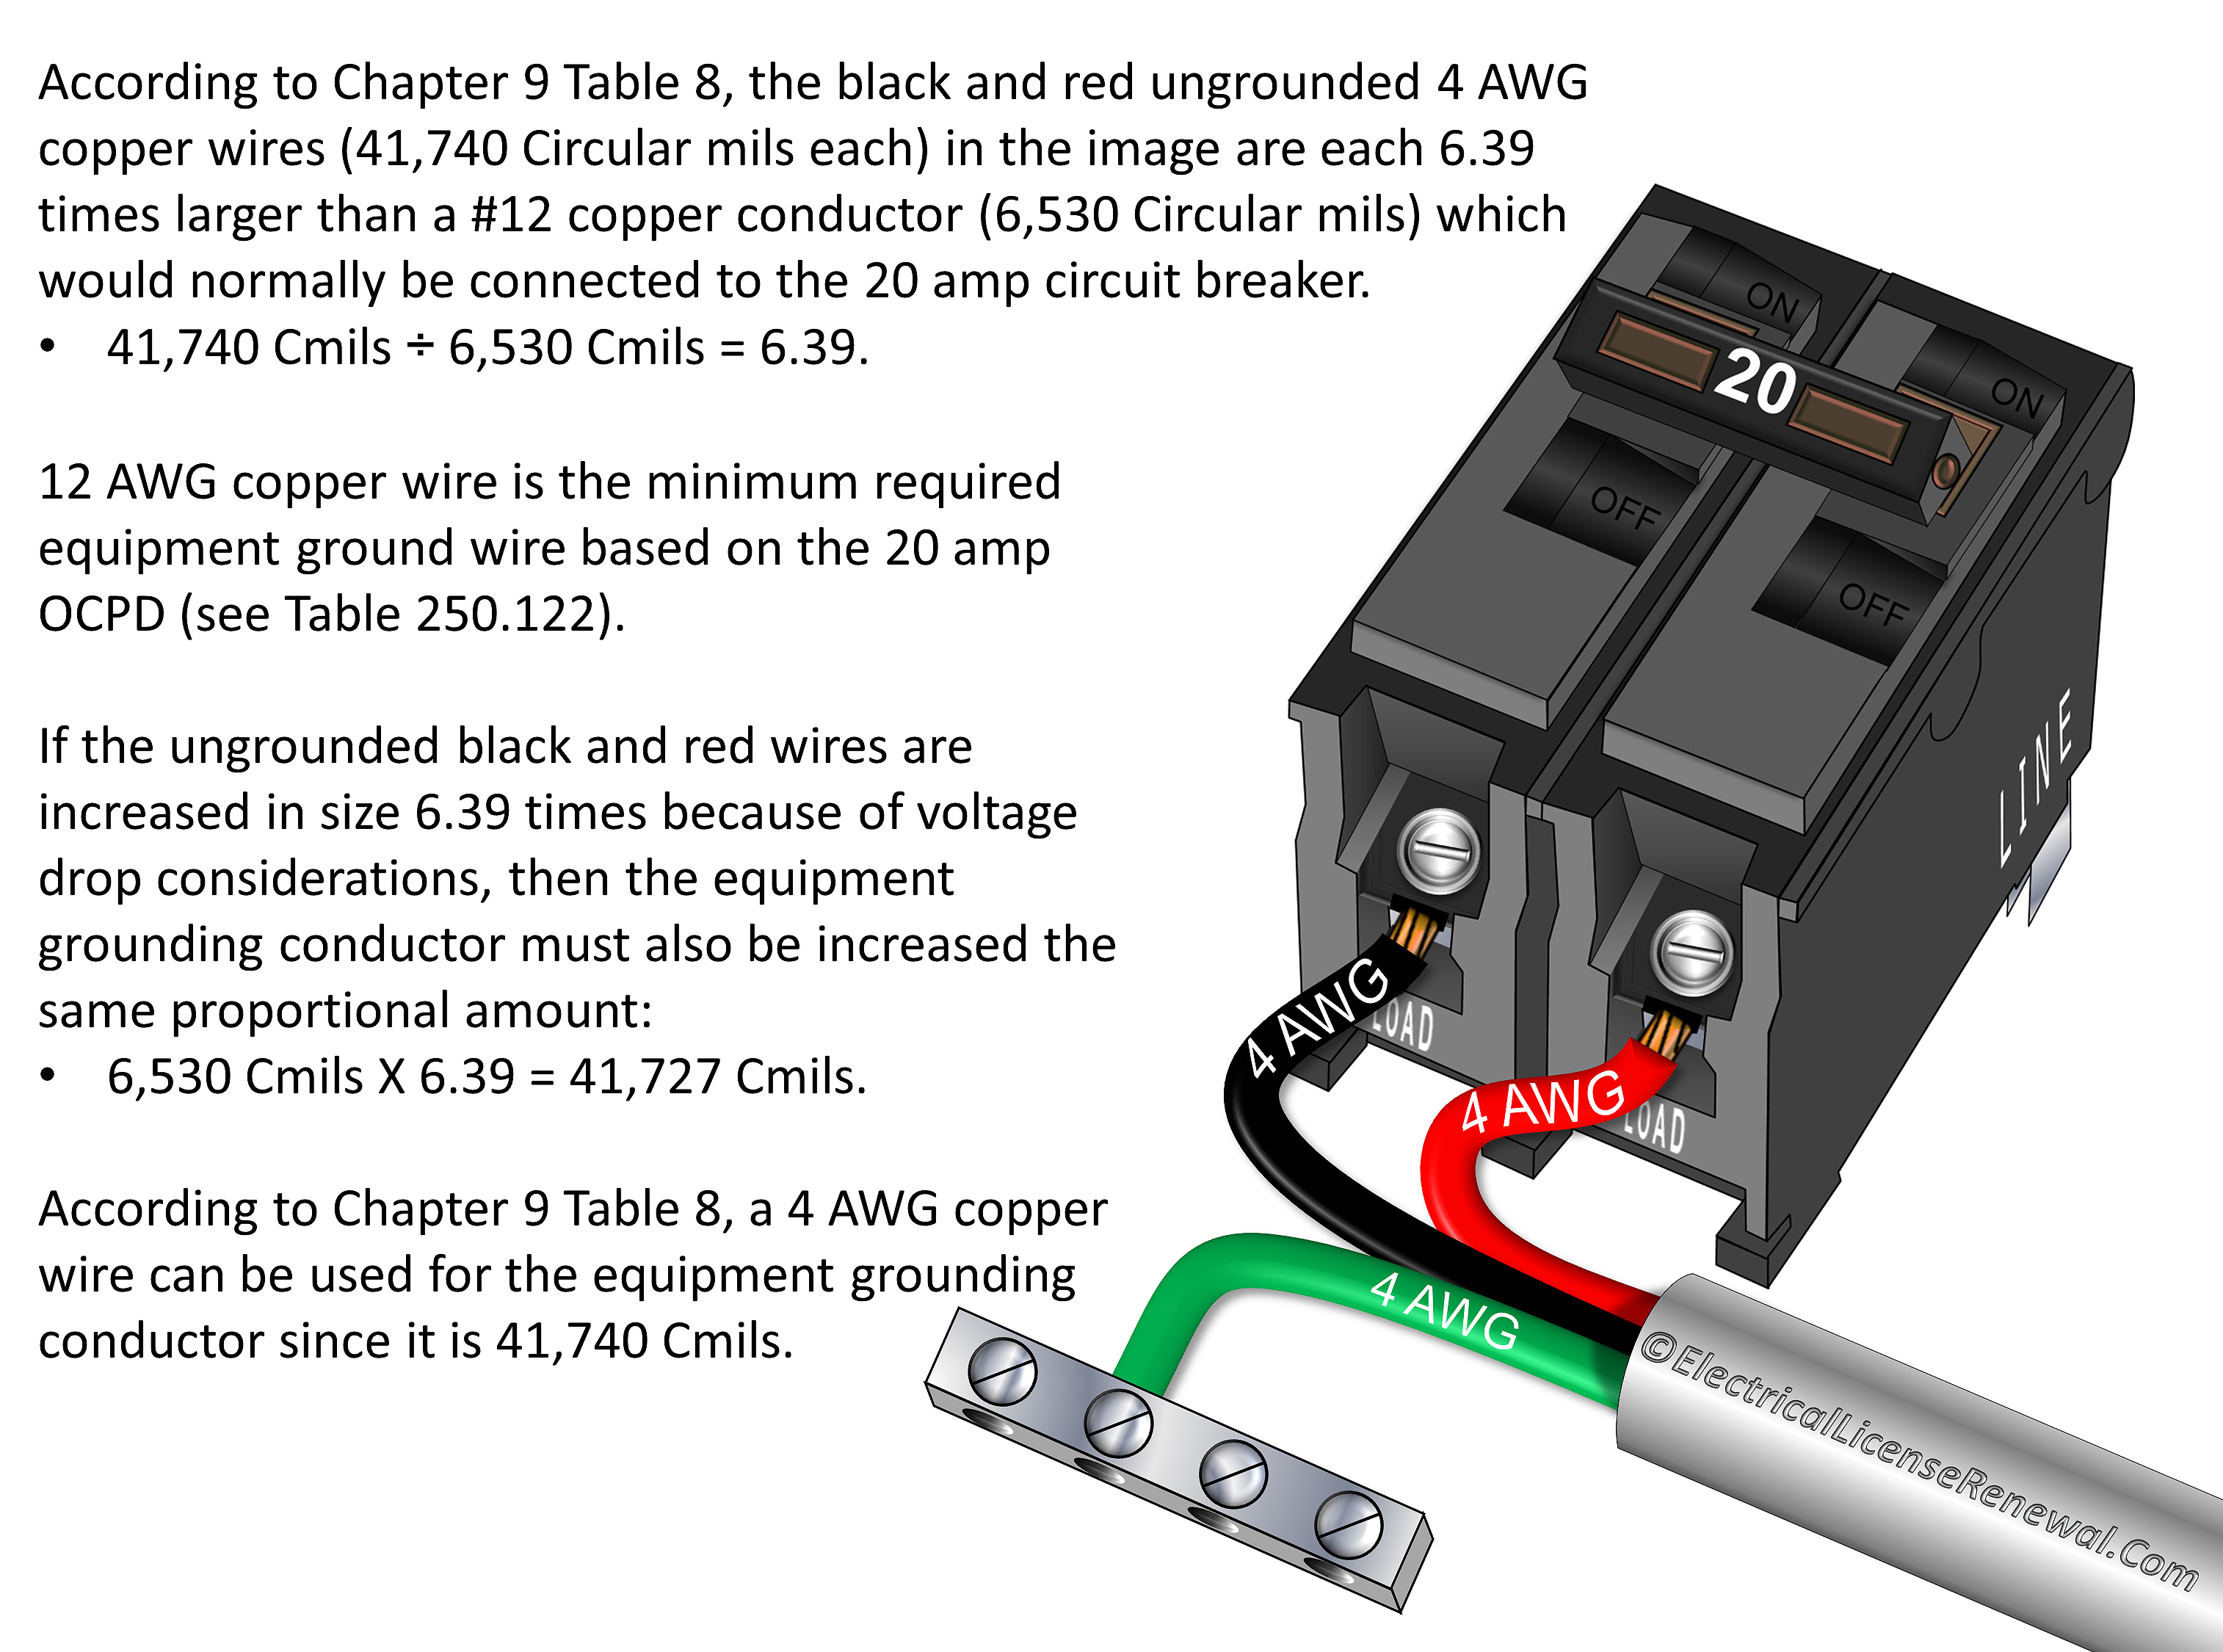 250 122 B Size Of Equipment Grounding Conductors Increased In Size